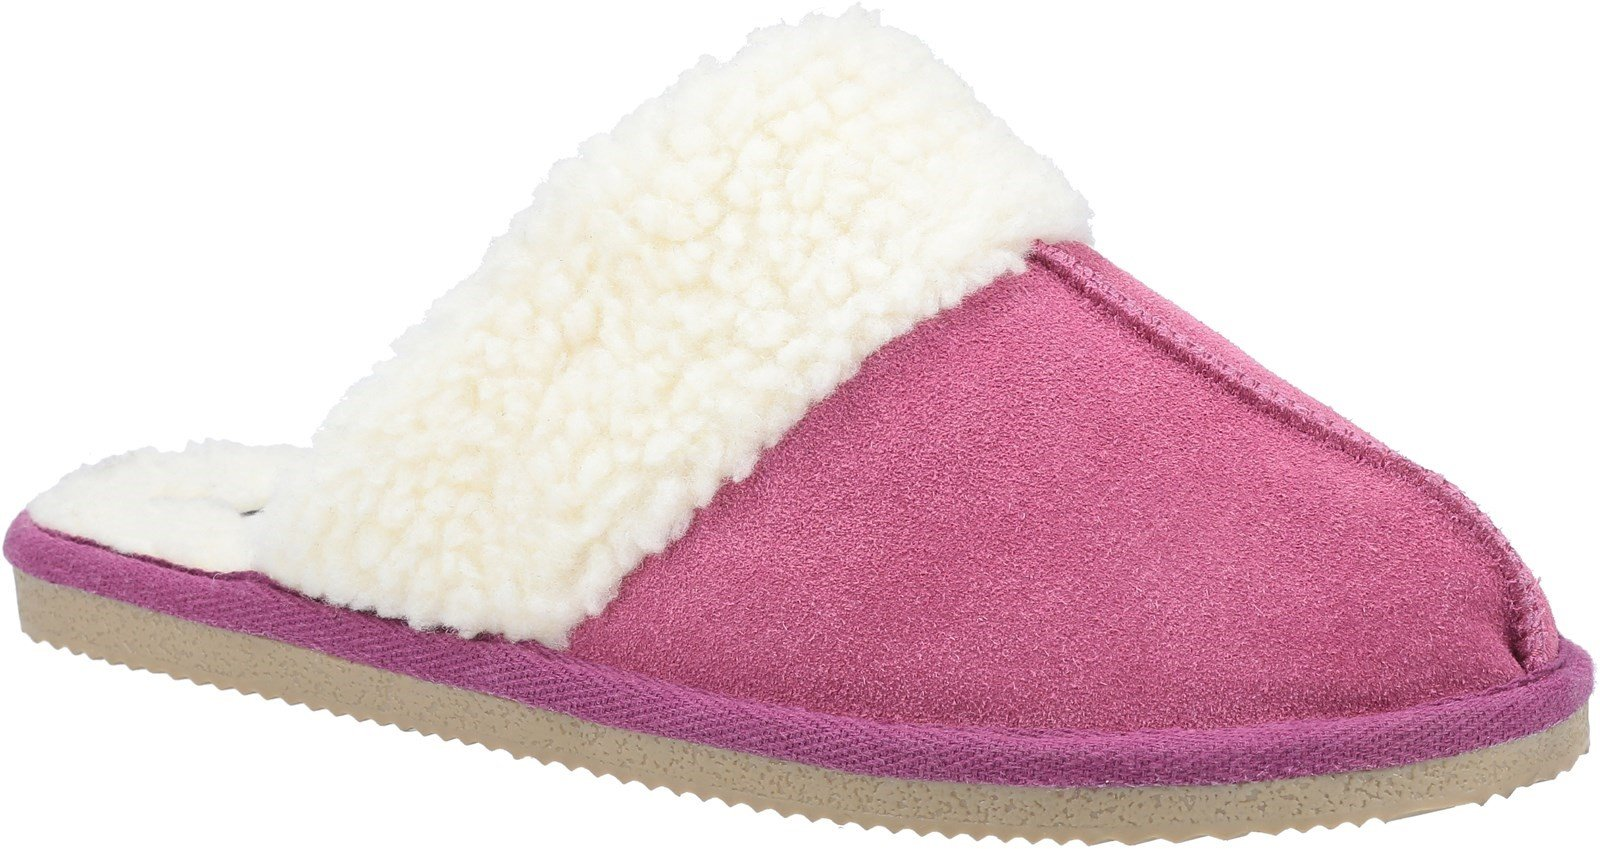 Hush Puppies Women's Arianna Mule Slippers Various Colours 31183 - Pink 3